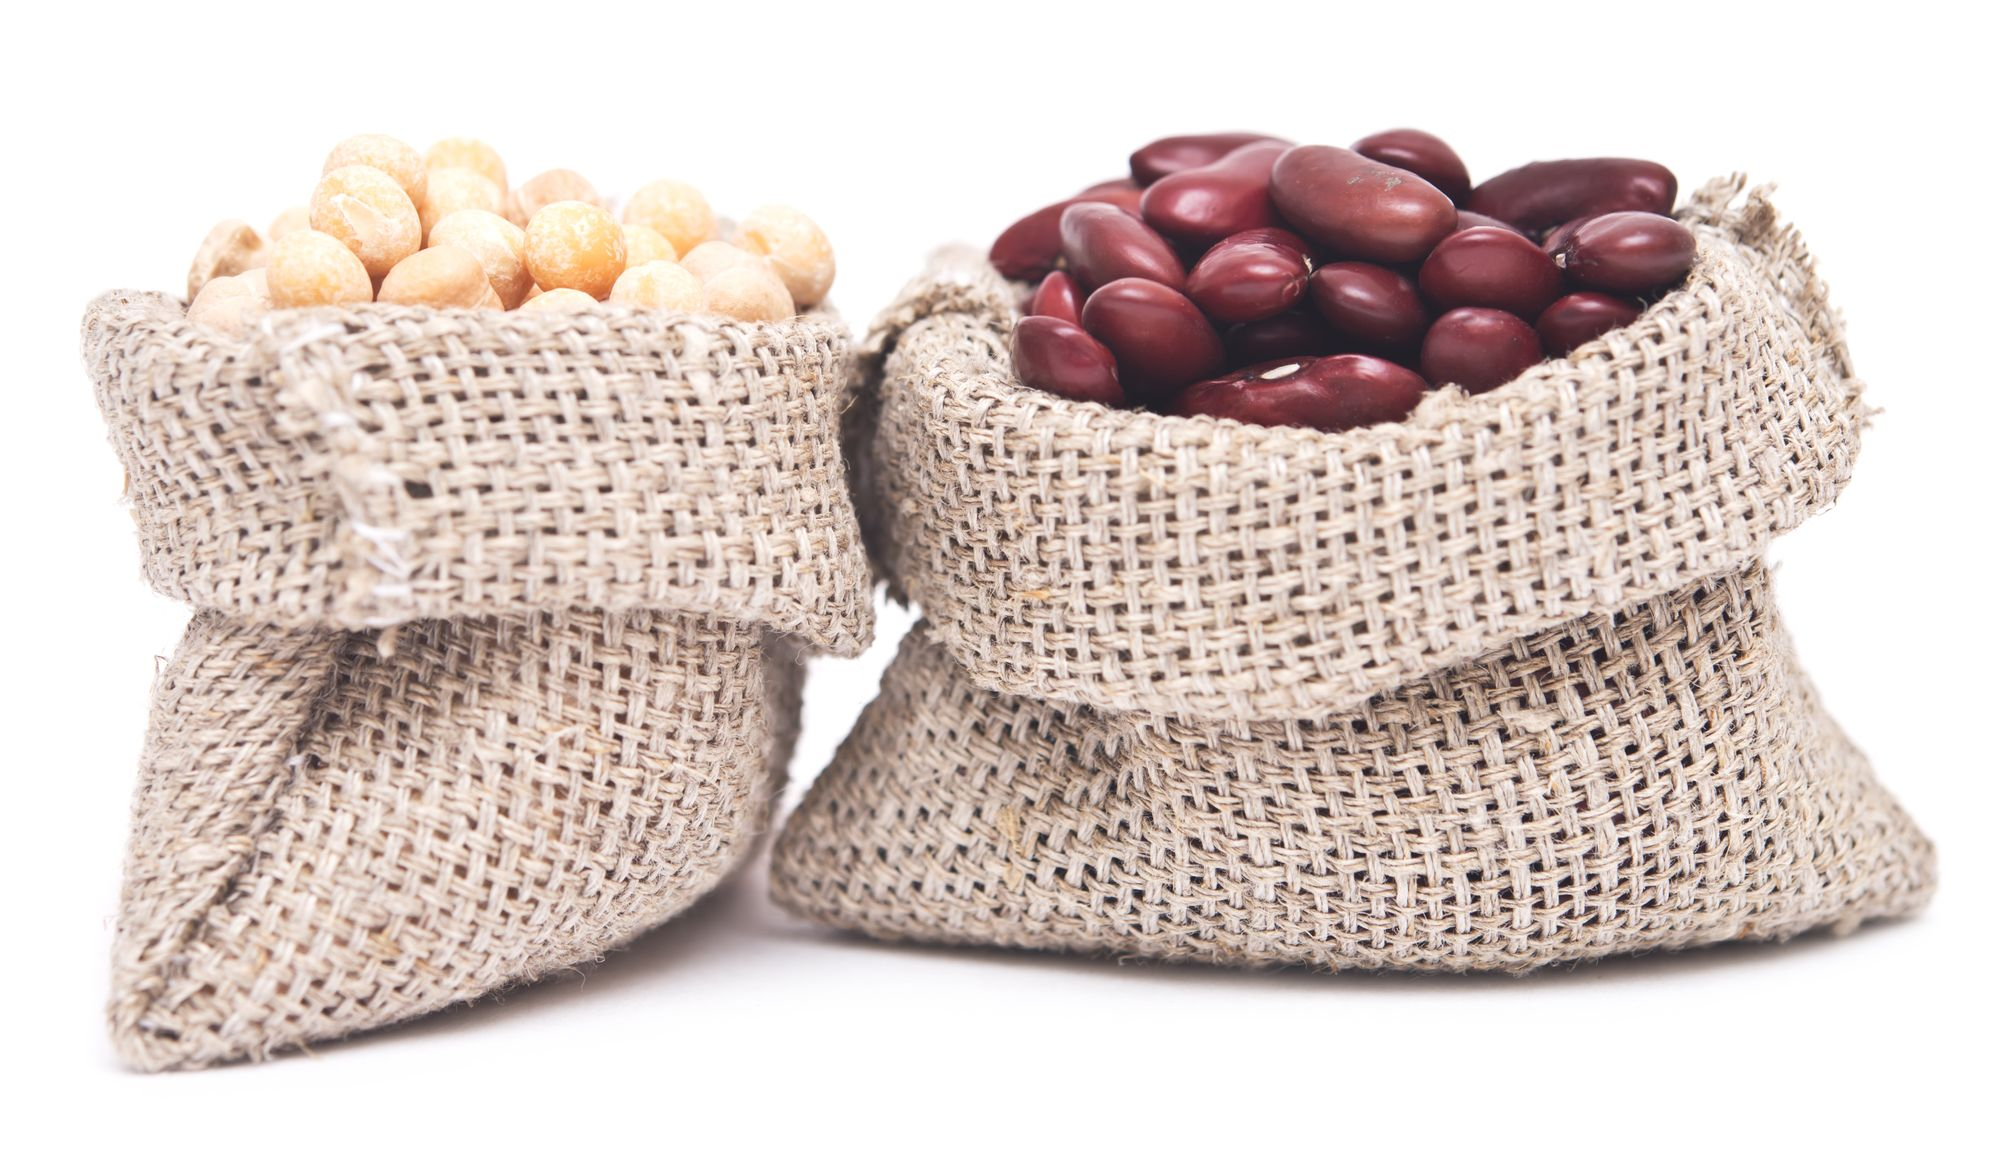 chickpeas-and-kidney-beans